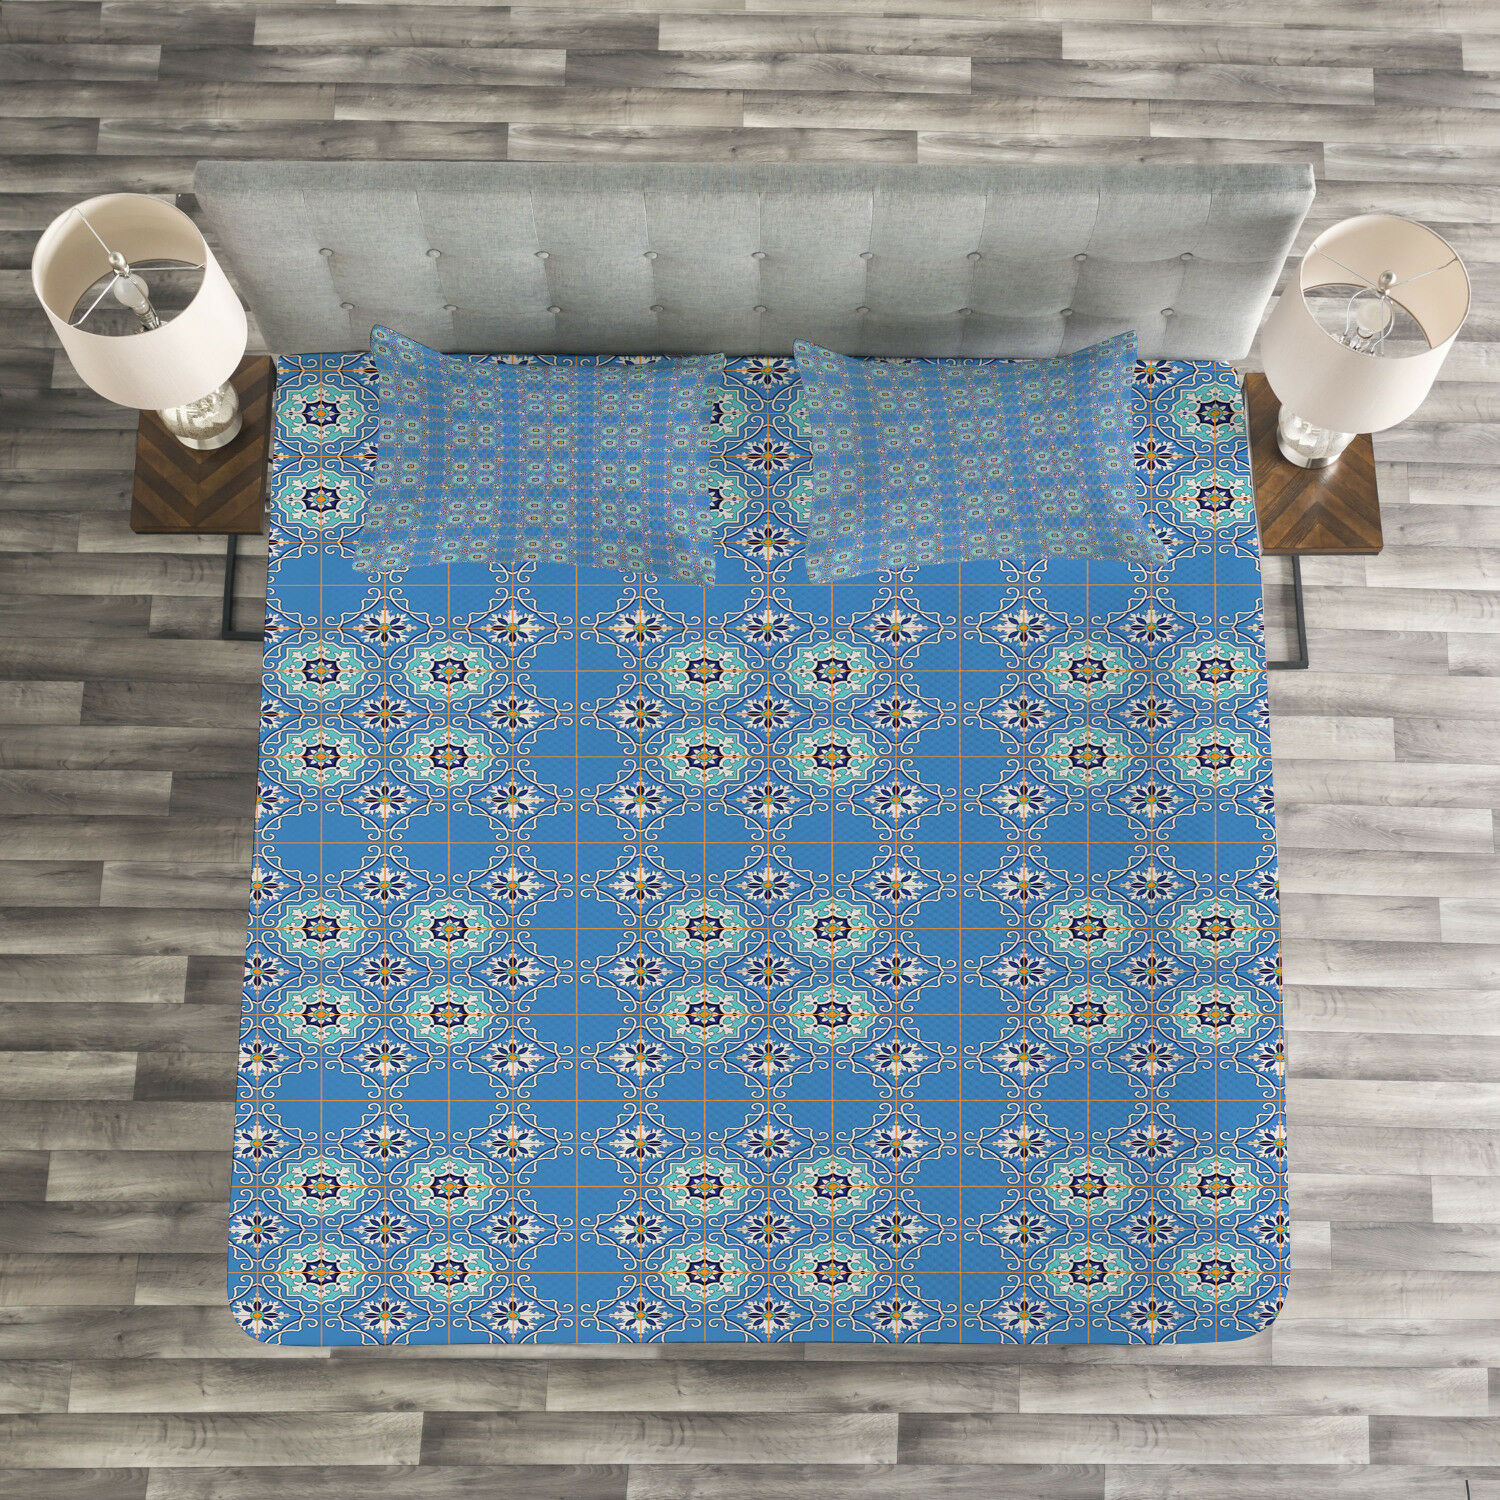 Mgoldccan Quilted Bedspread & Pillow Shams Set, Patchwork Style blueeee Print